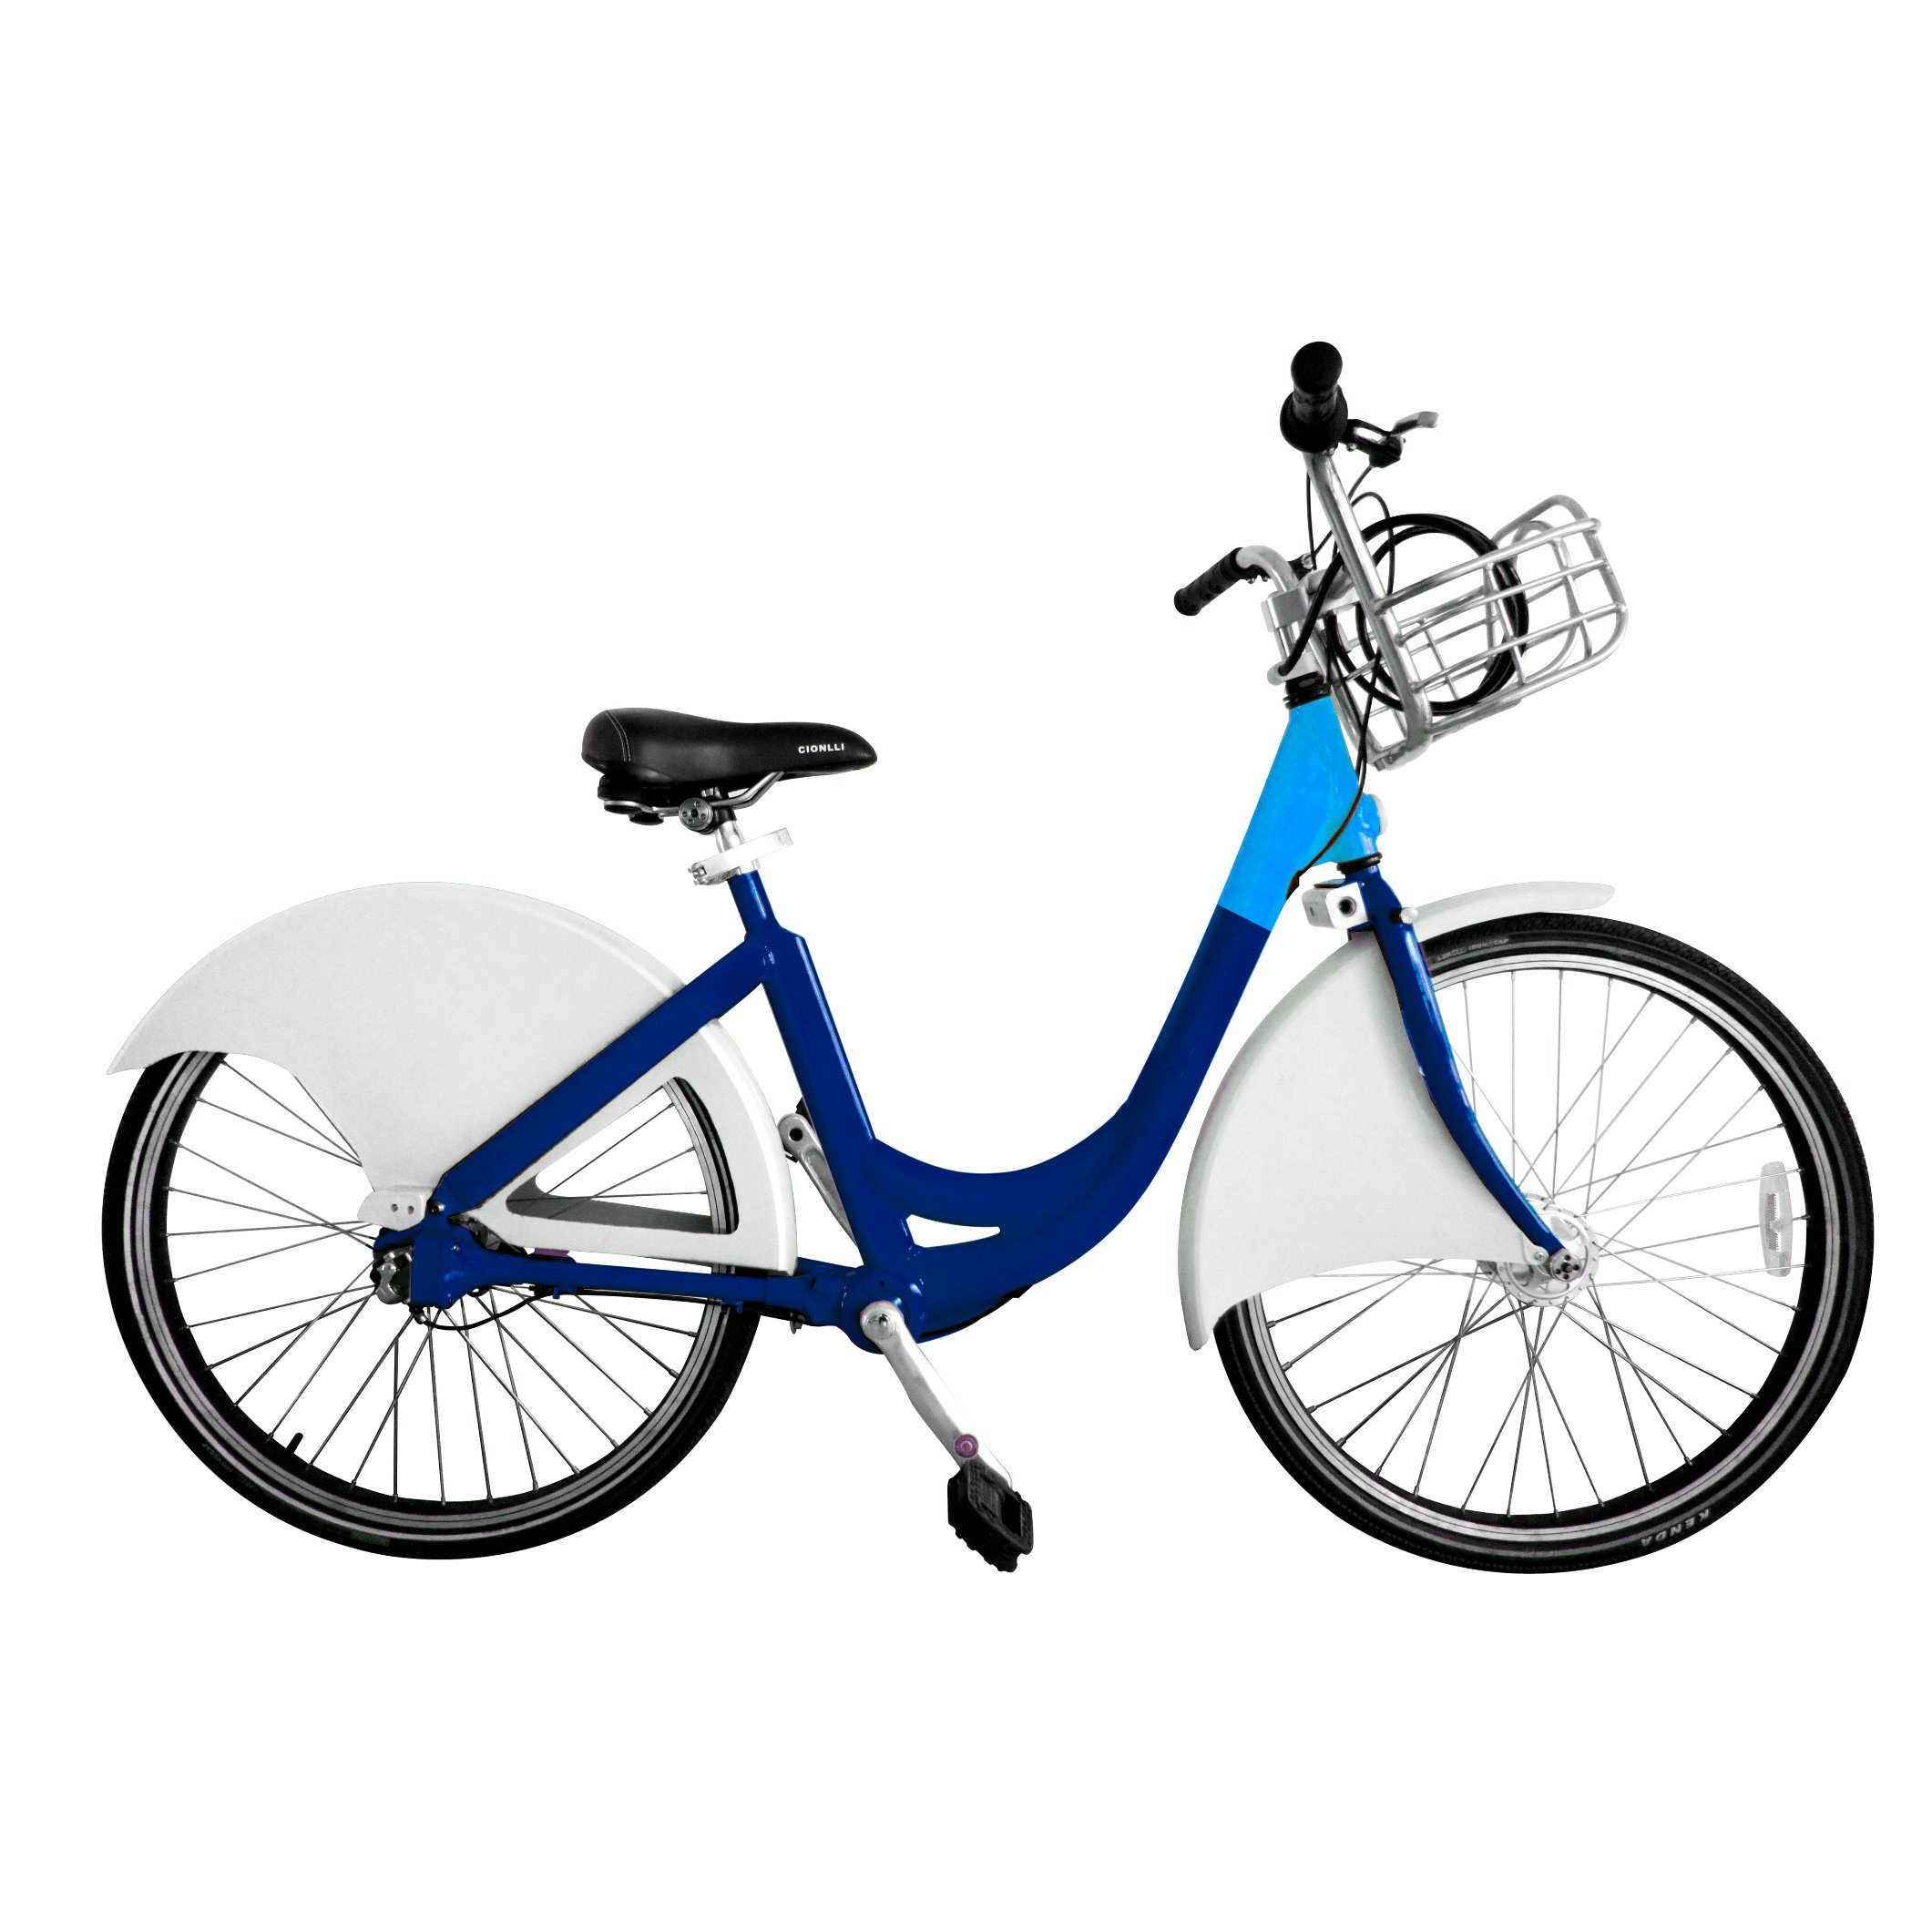 China High Quality Smart City Public Bike Rental System with ...